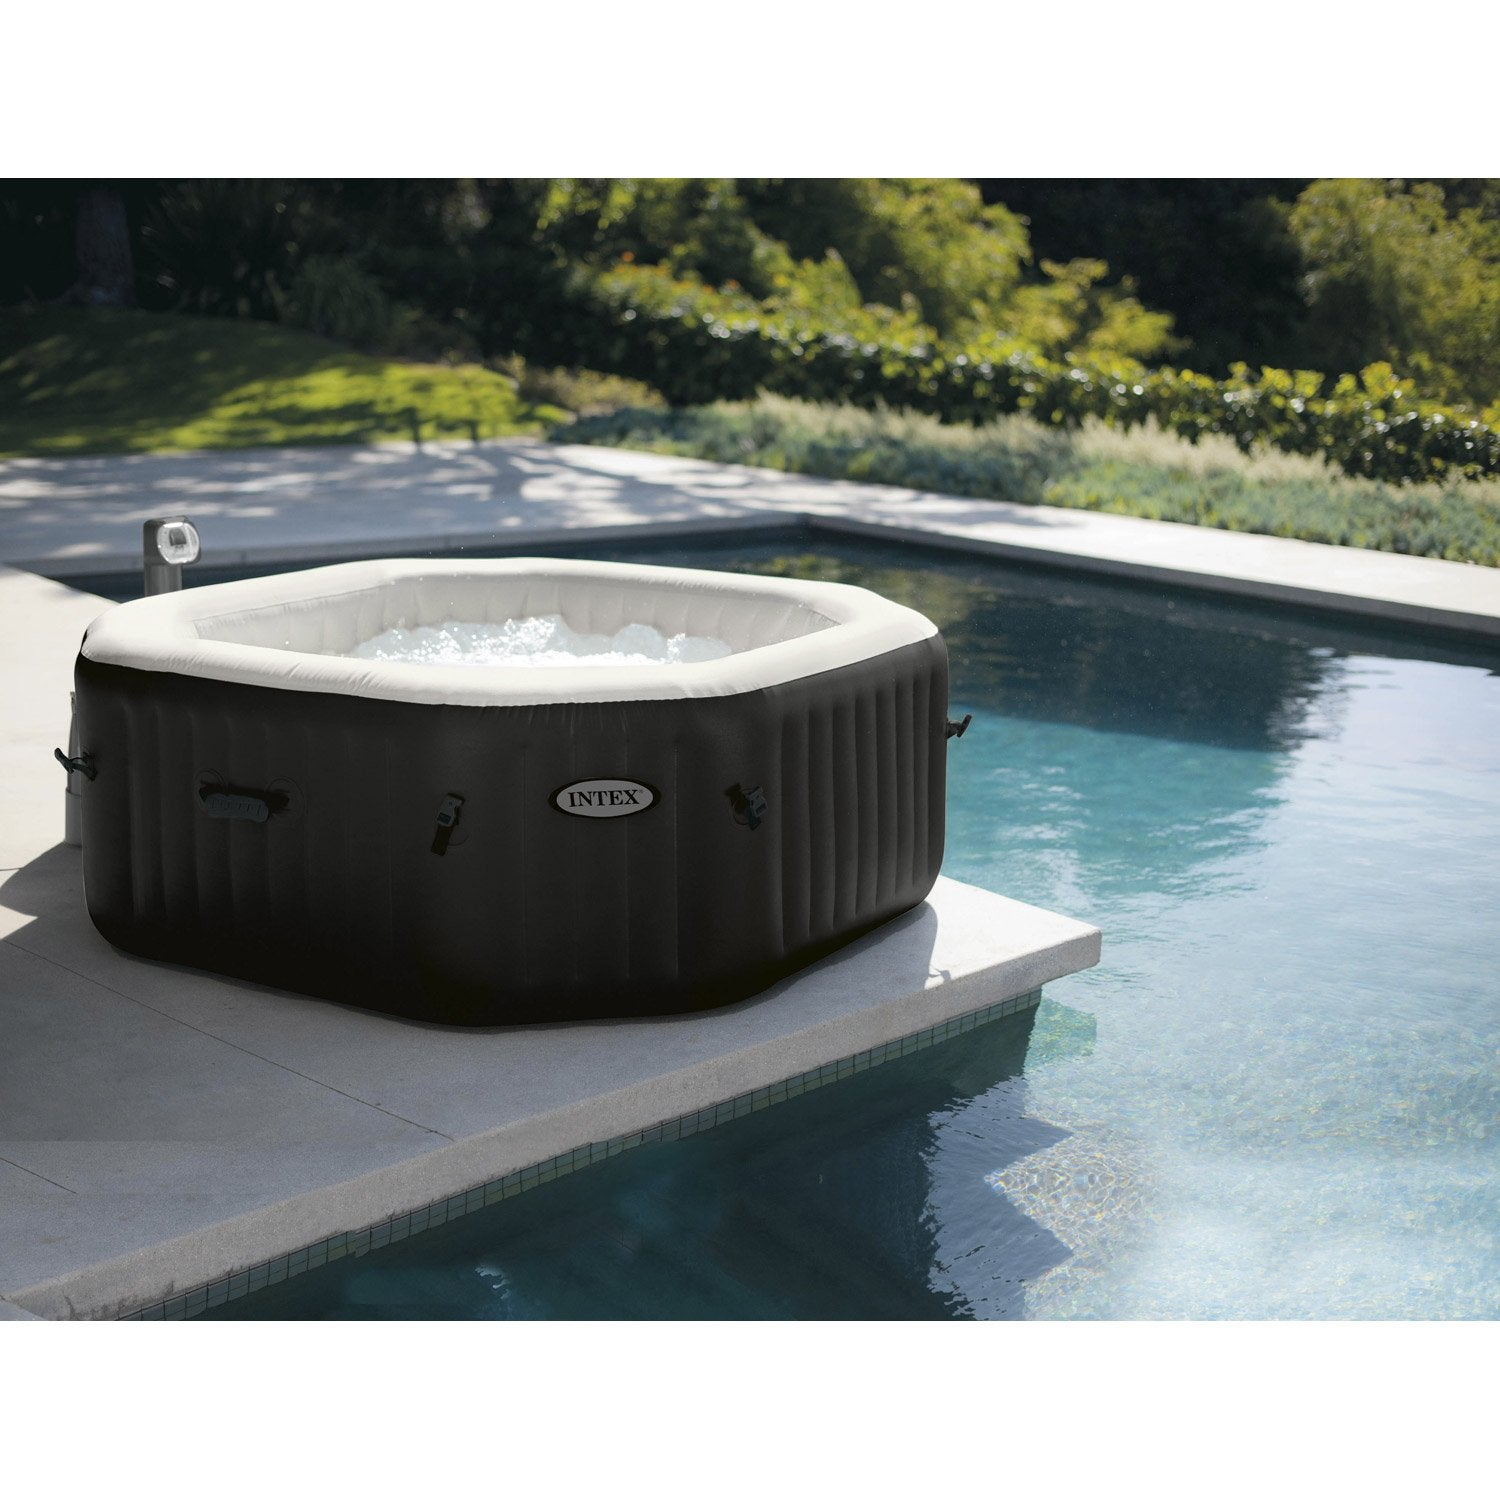 Spa gonflable intex purespa bulles octogonale 6 places - Piscine intex usate ...